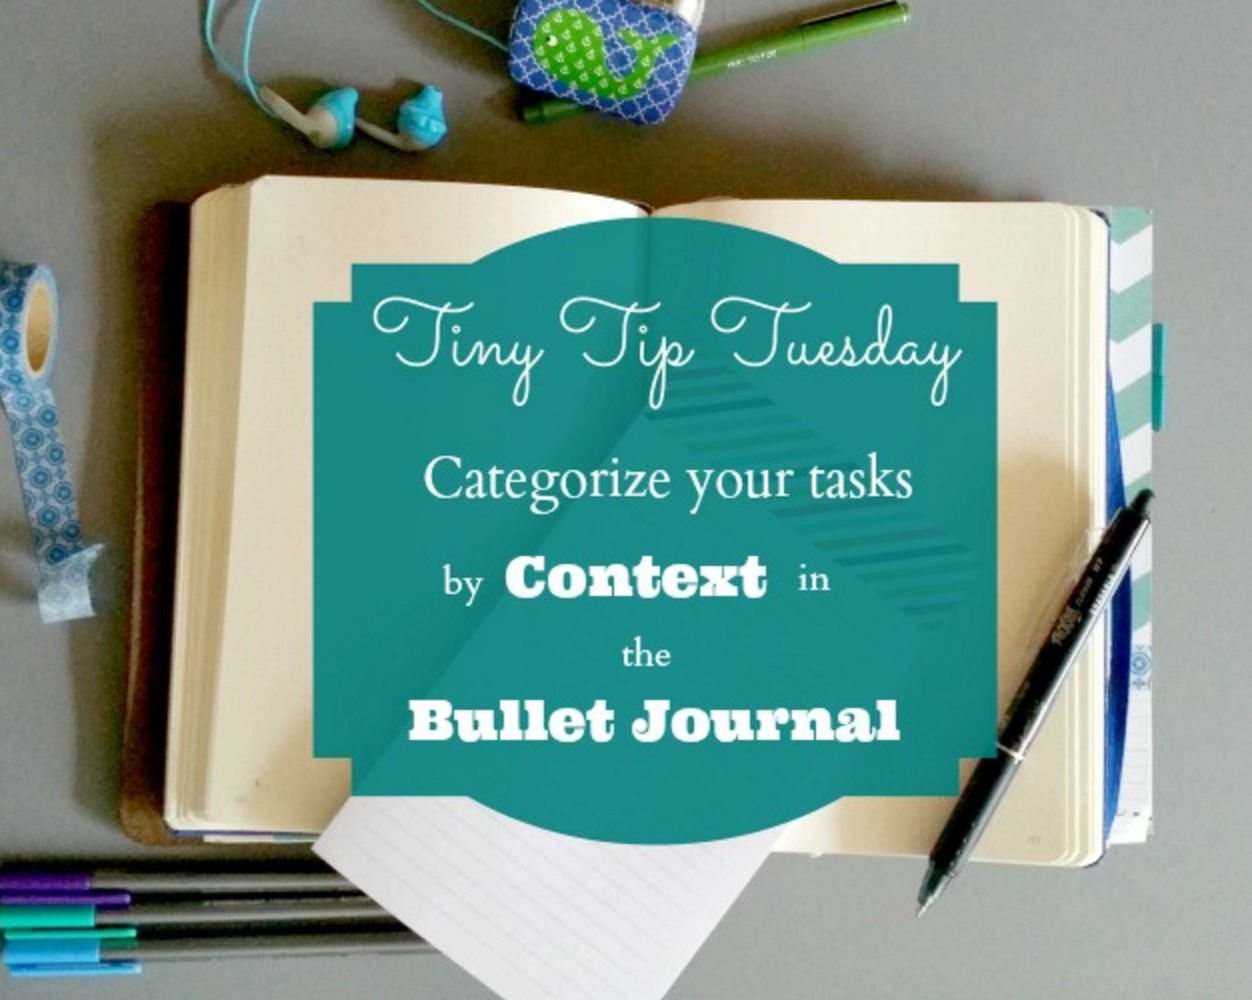 c ategorize your tasks by context in the bullet journal